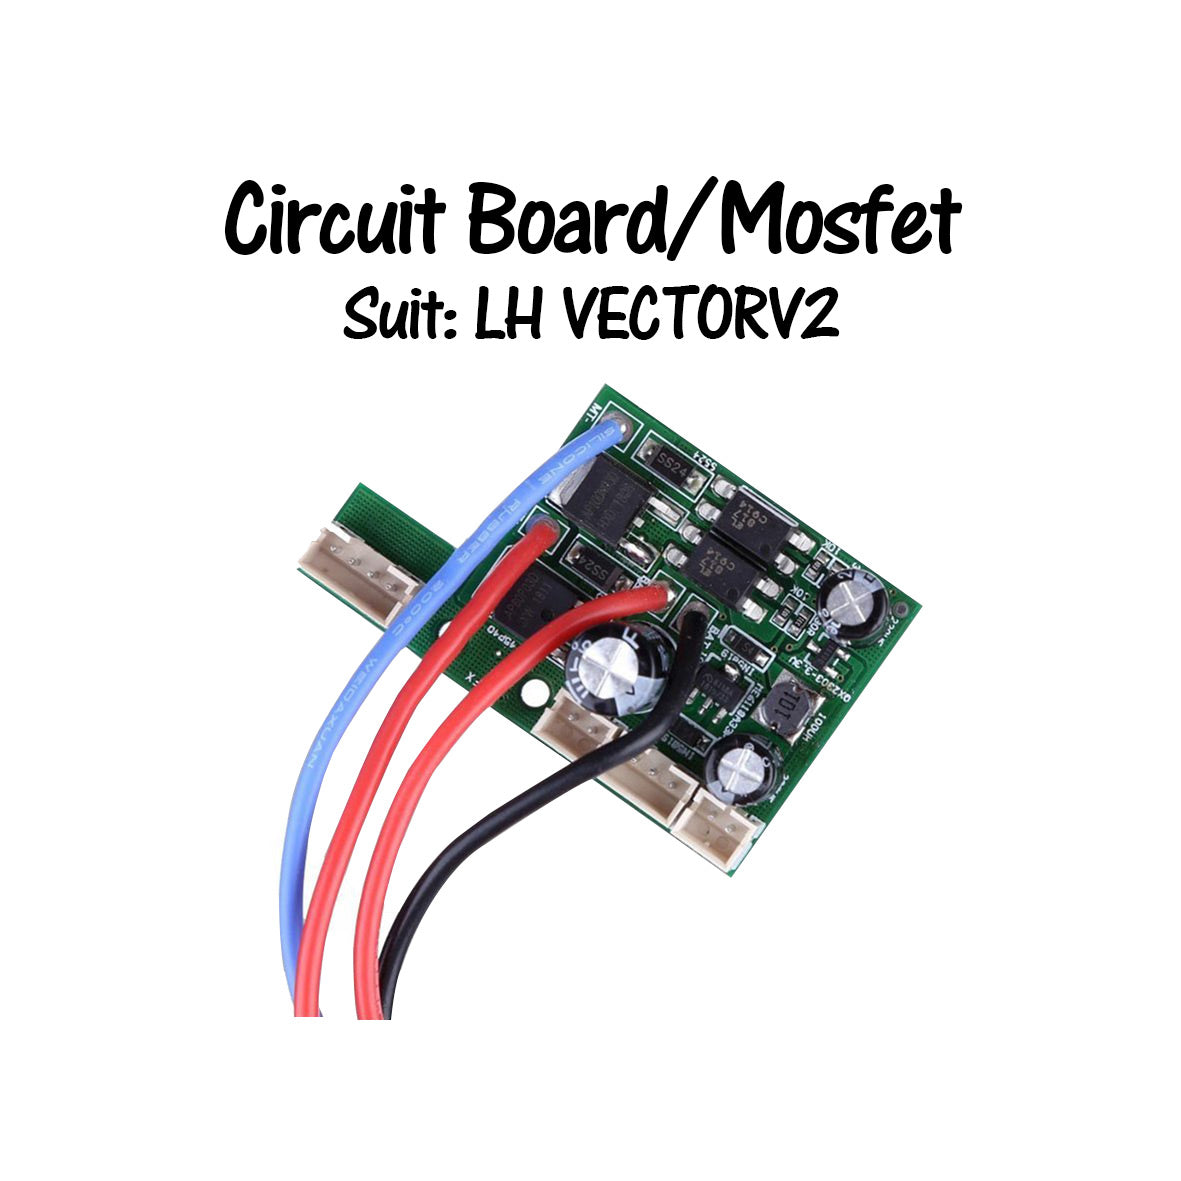 LH VECTOR V2 MOSFET/CIRCUIT BOARD